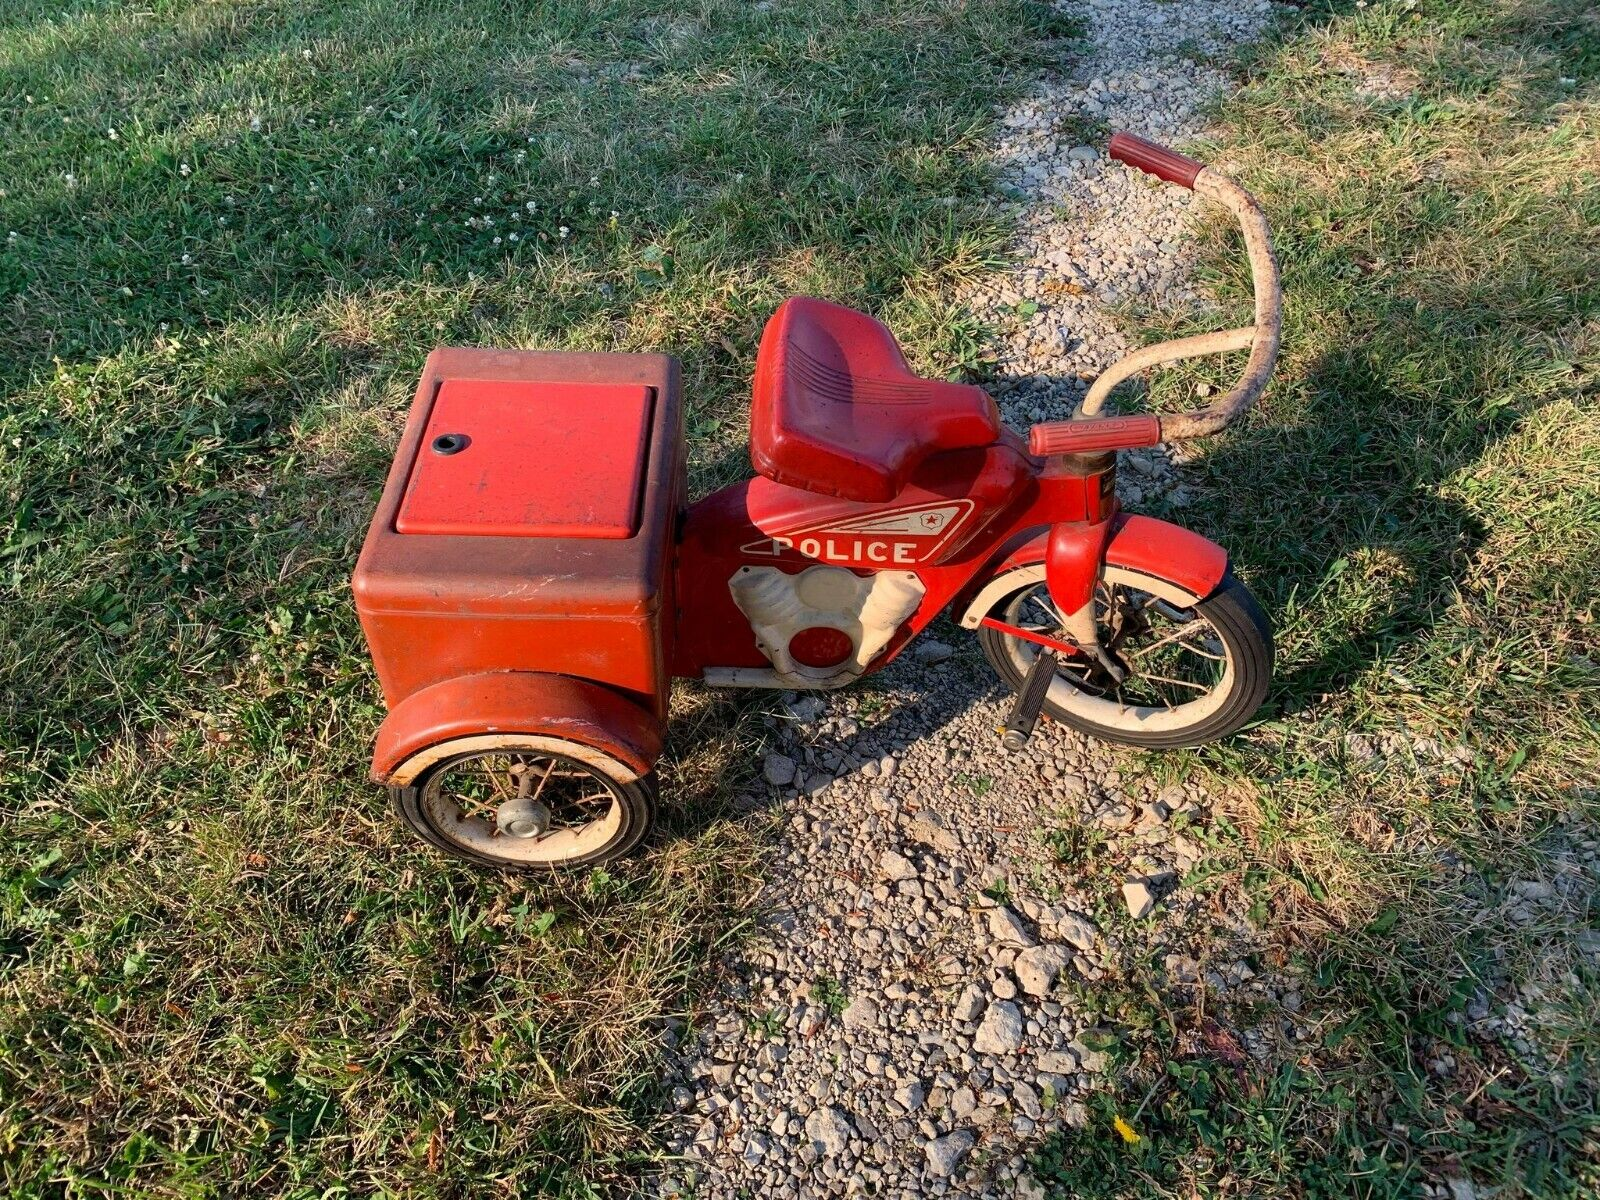 VERY RARE EVANS Police Ride On Tricycle Bicycle Pedal Car 100% Original Colson (Used - 8500 USD)